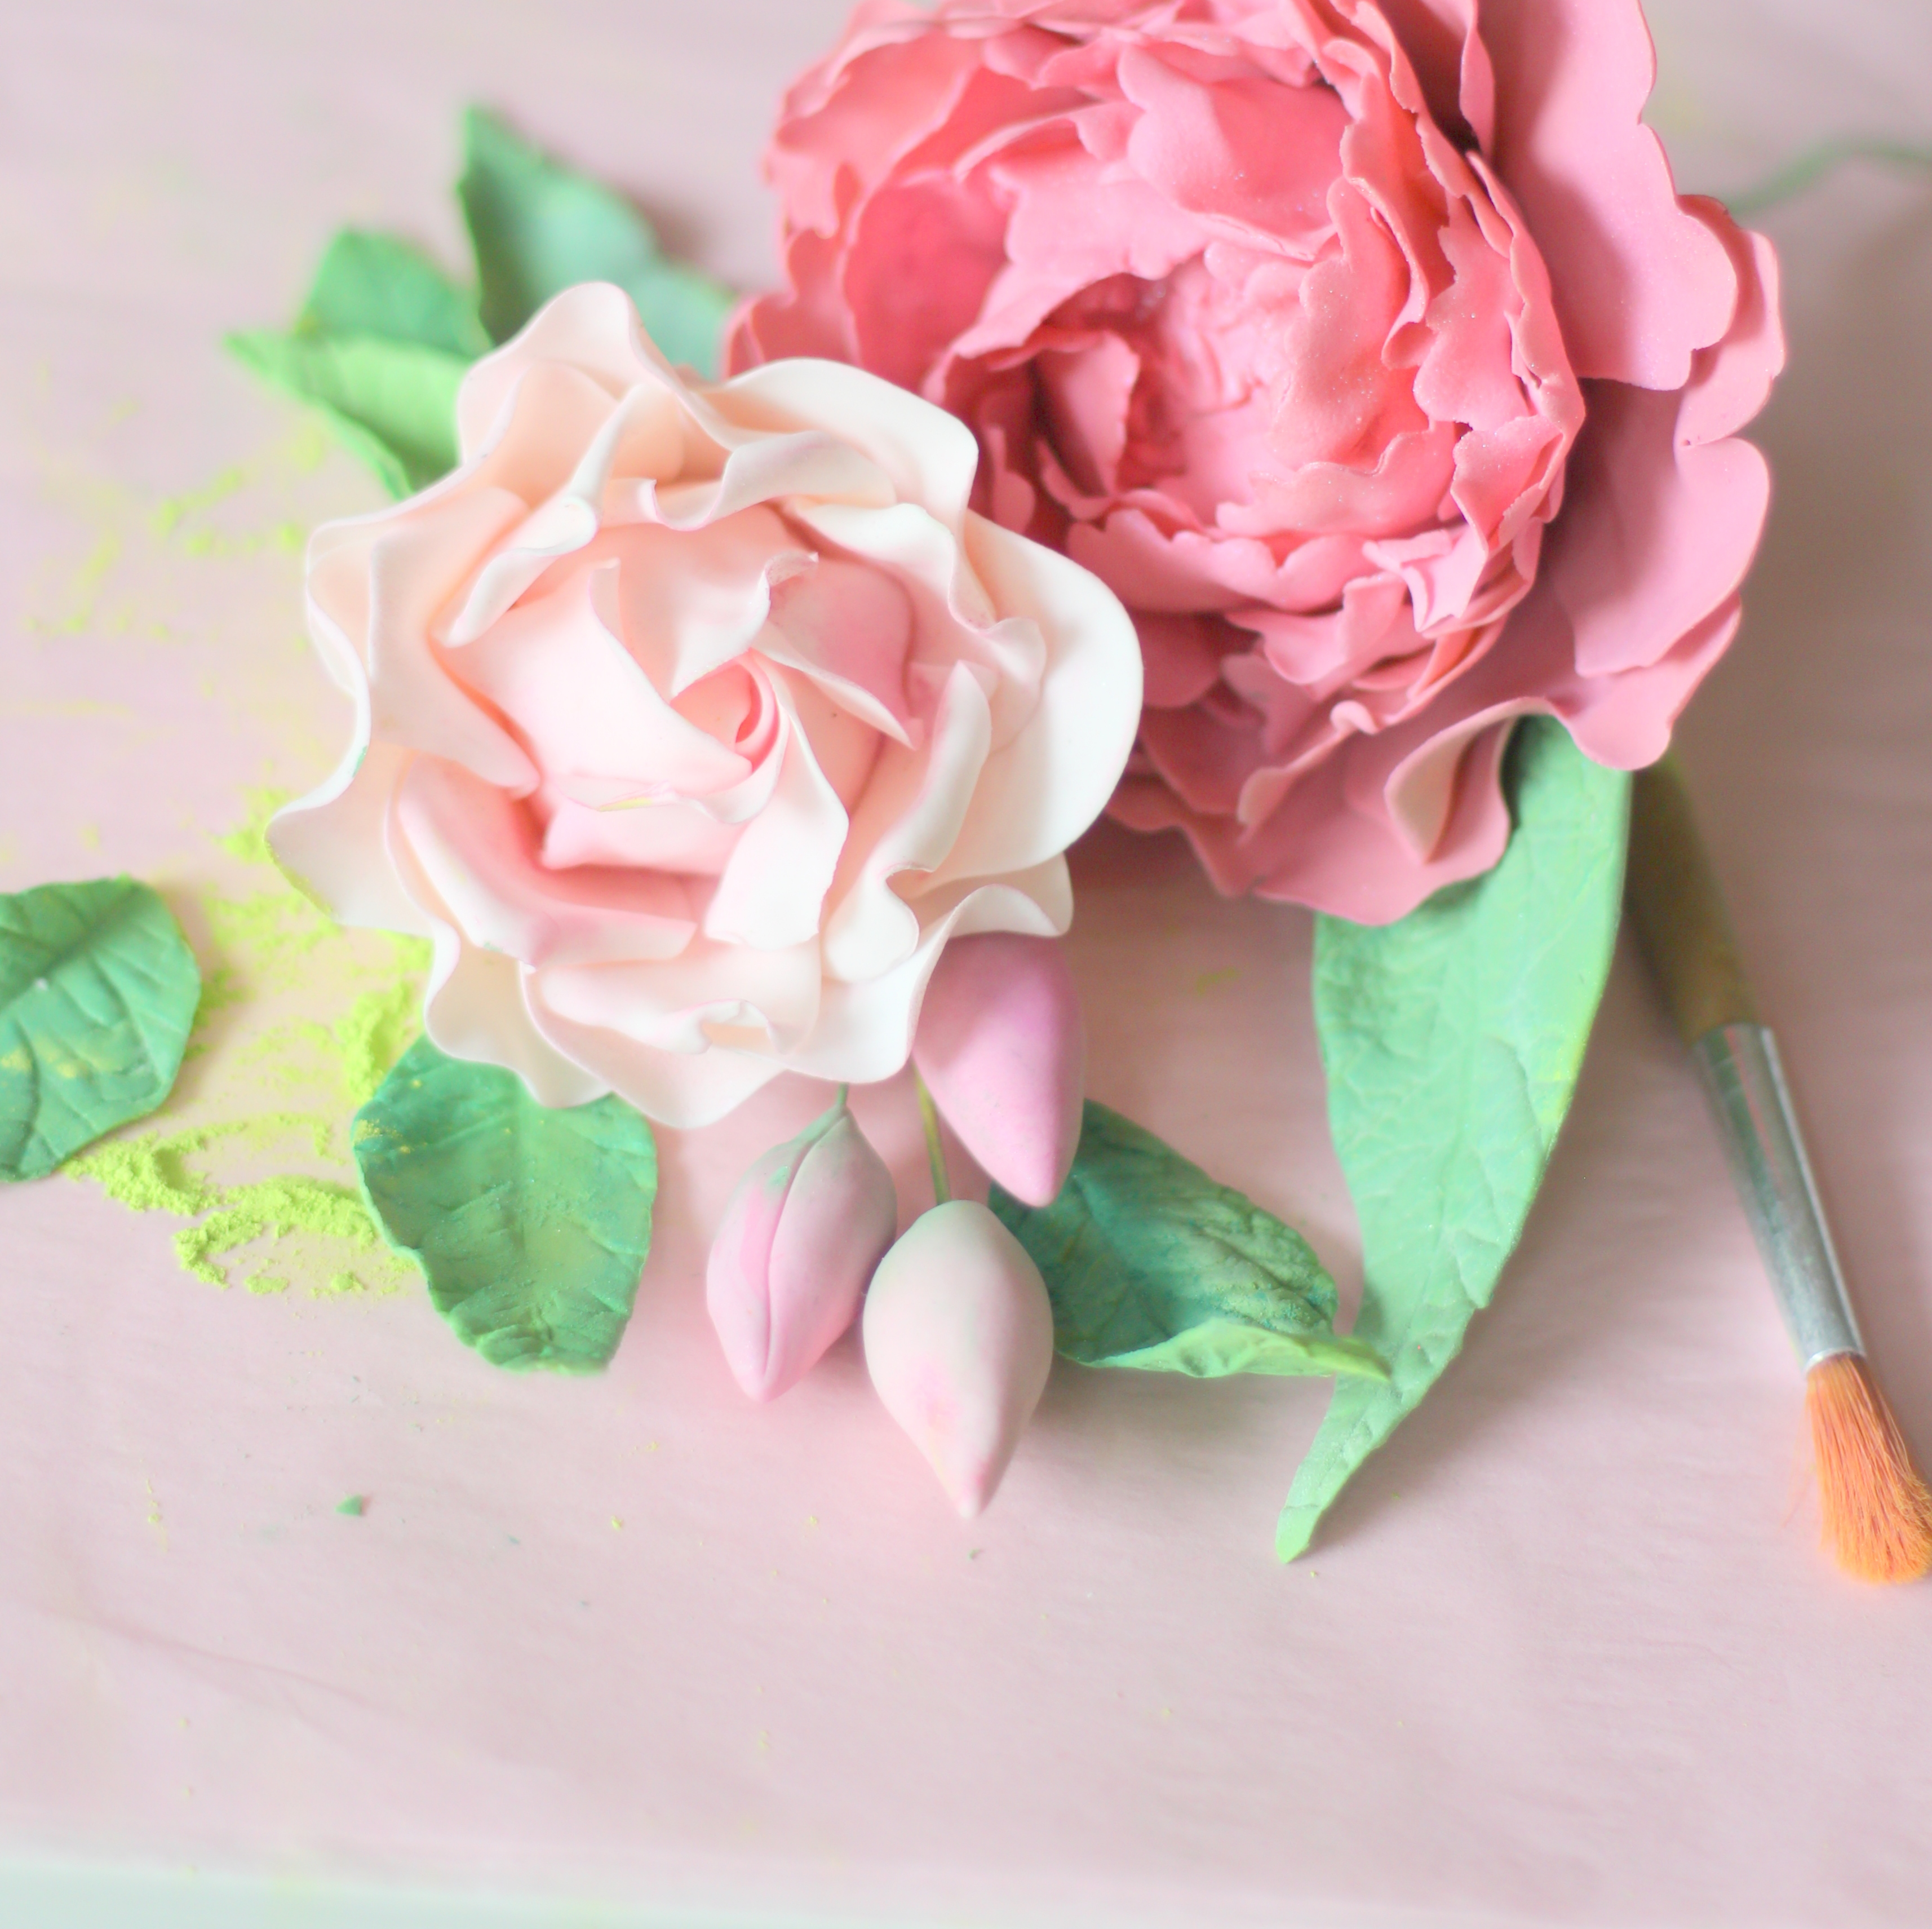 sugar flowers peony and pink rose crop bright.jpg